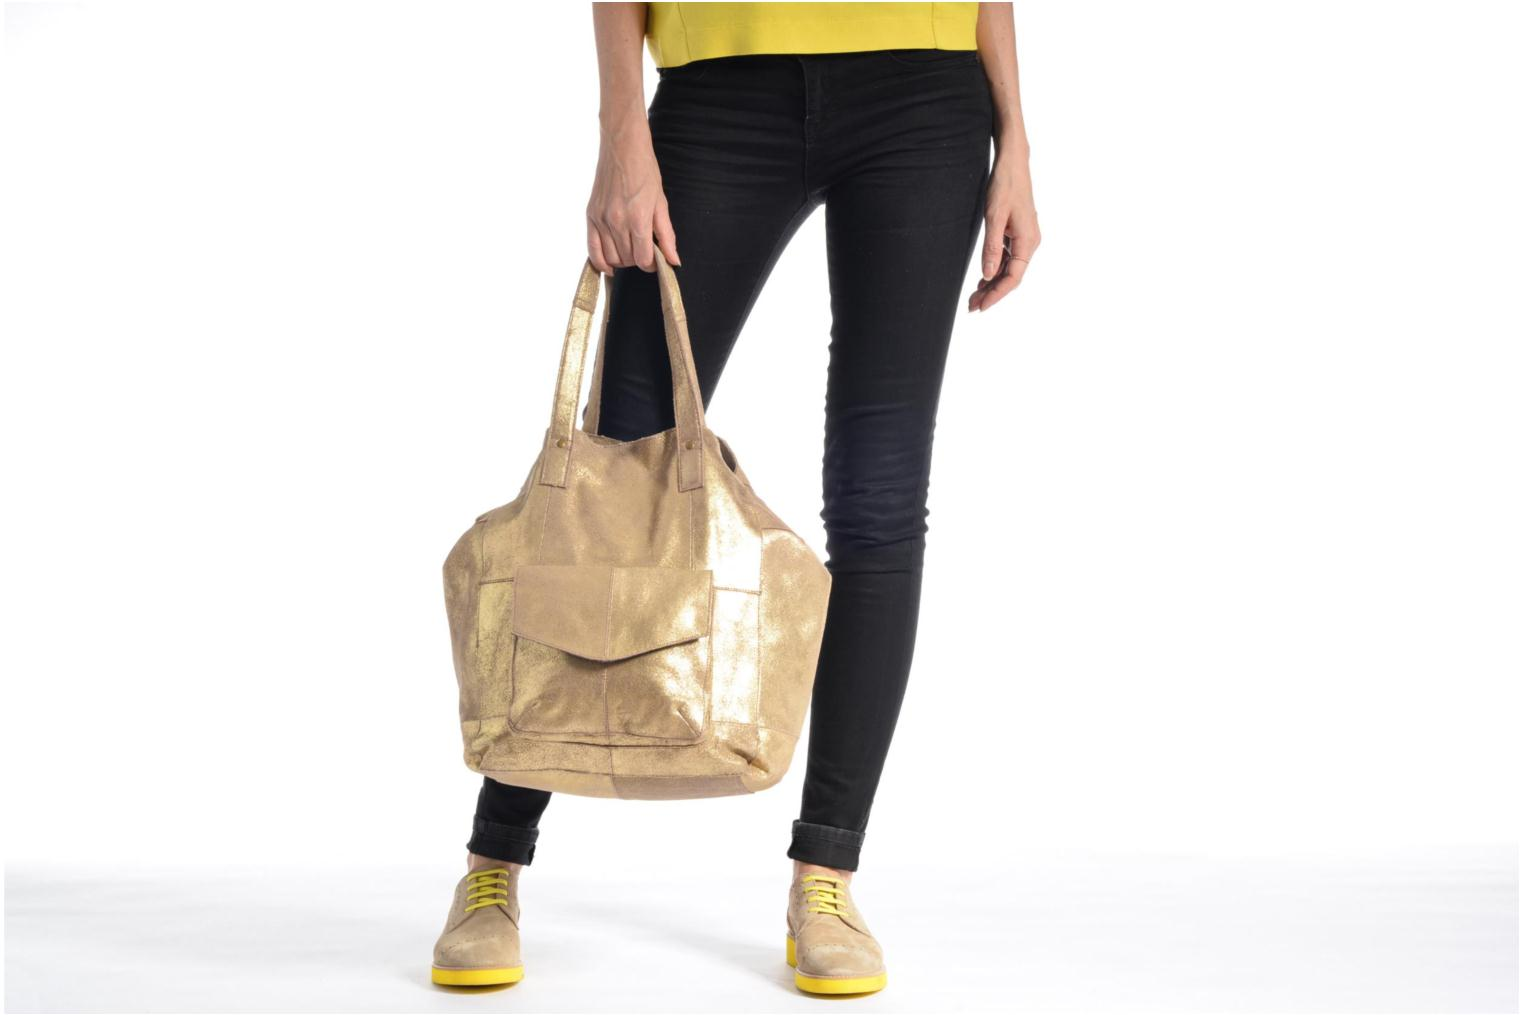 Handbags Pieces Vanity Leather Big bag Foil Bronze and Gold view from above